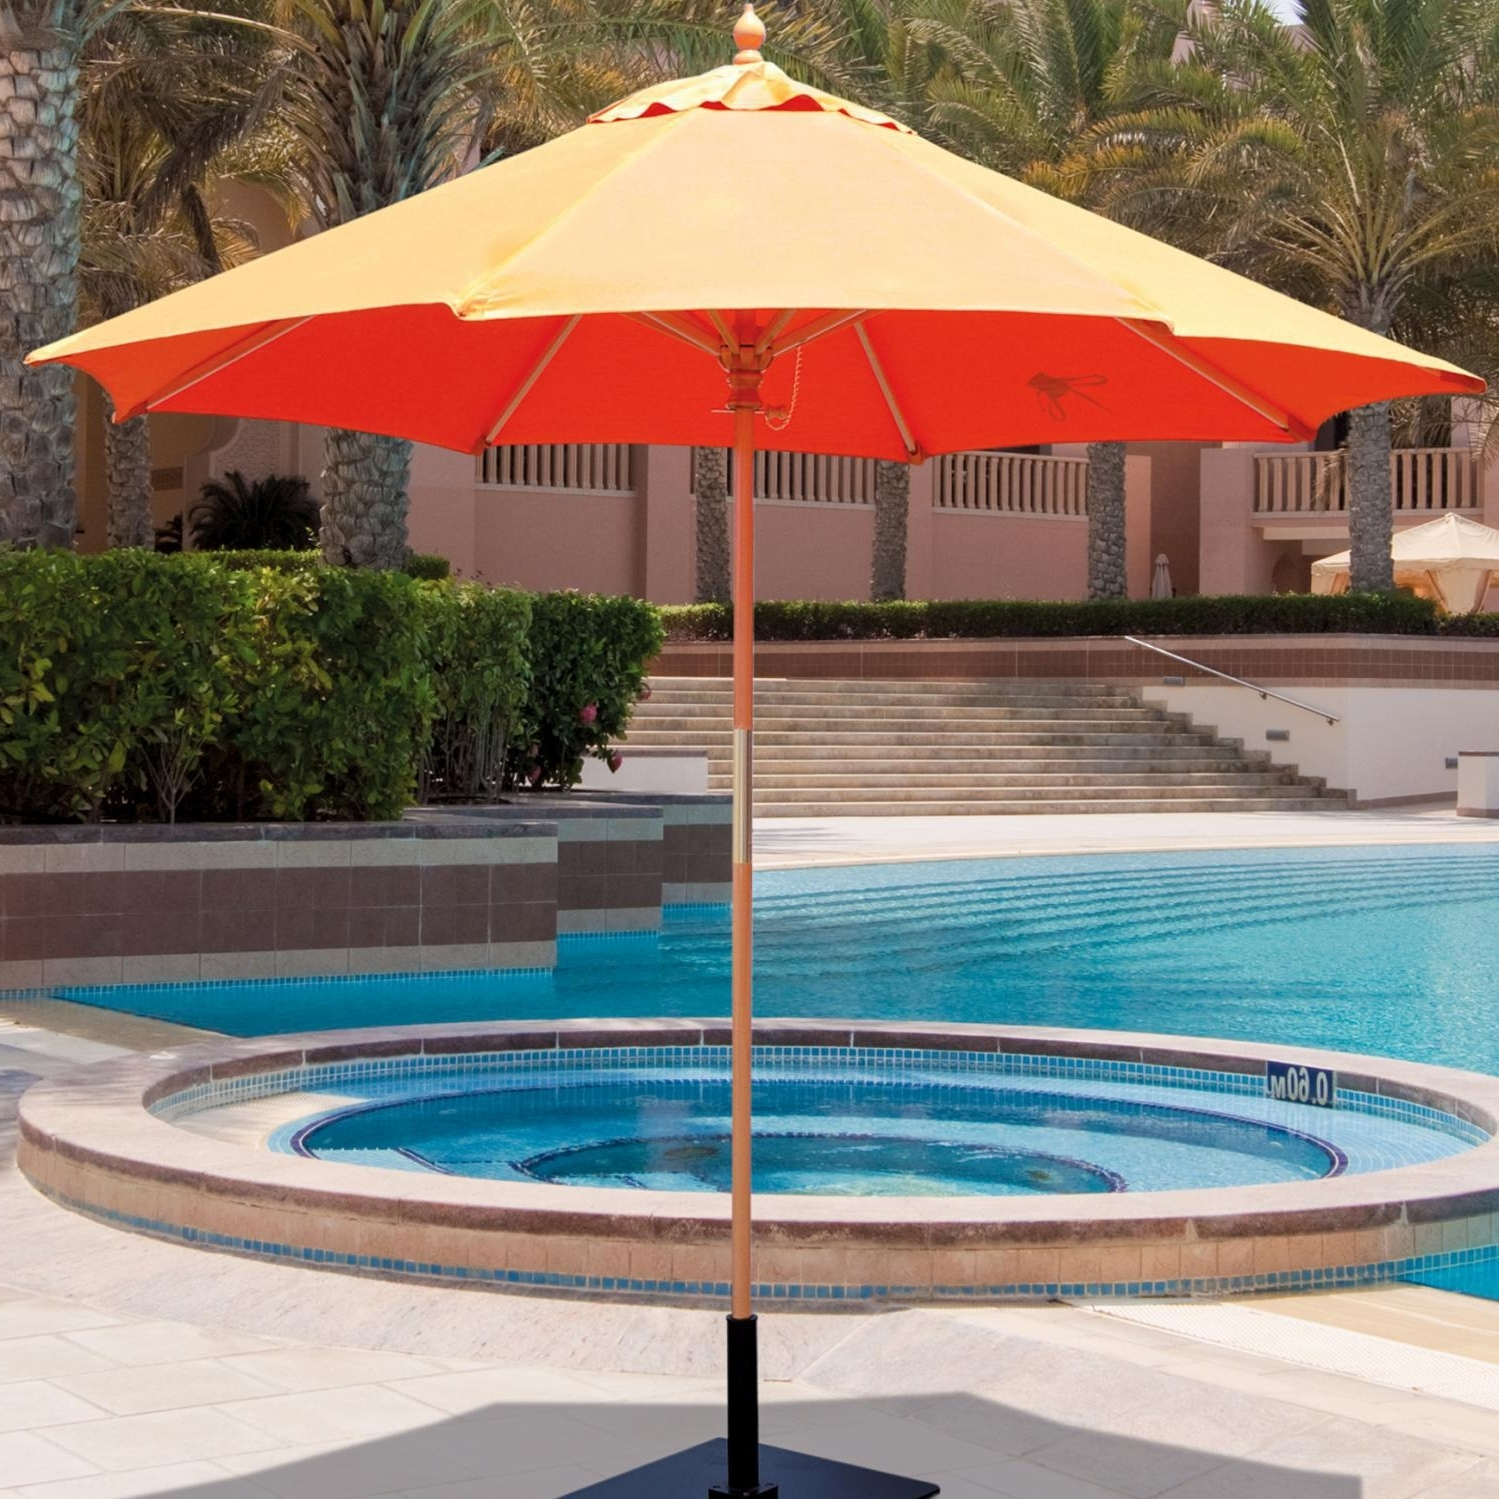 Popular Galtech 9 Ft Wood Patio Umbrella With Manual Lift – Light Wood Inside 9 Ft Patio Umbrellas (View 14 of 20)